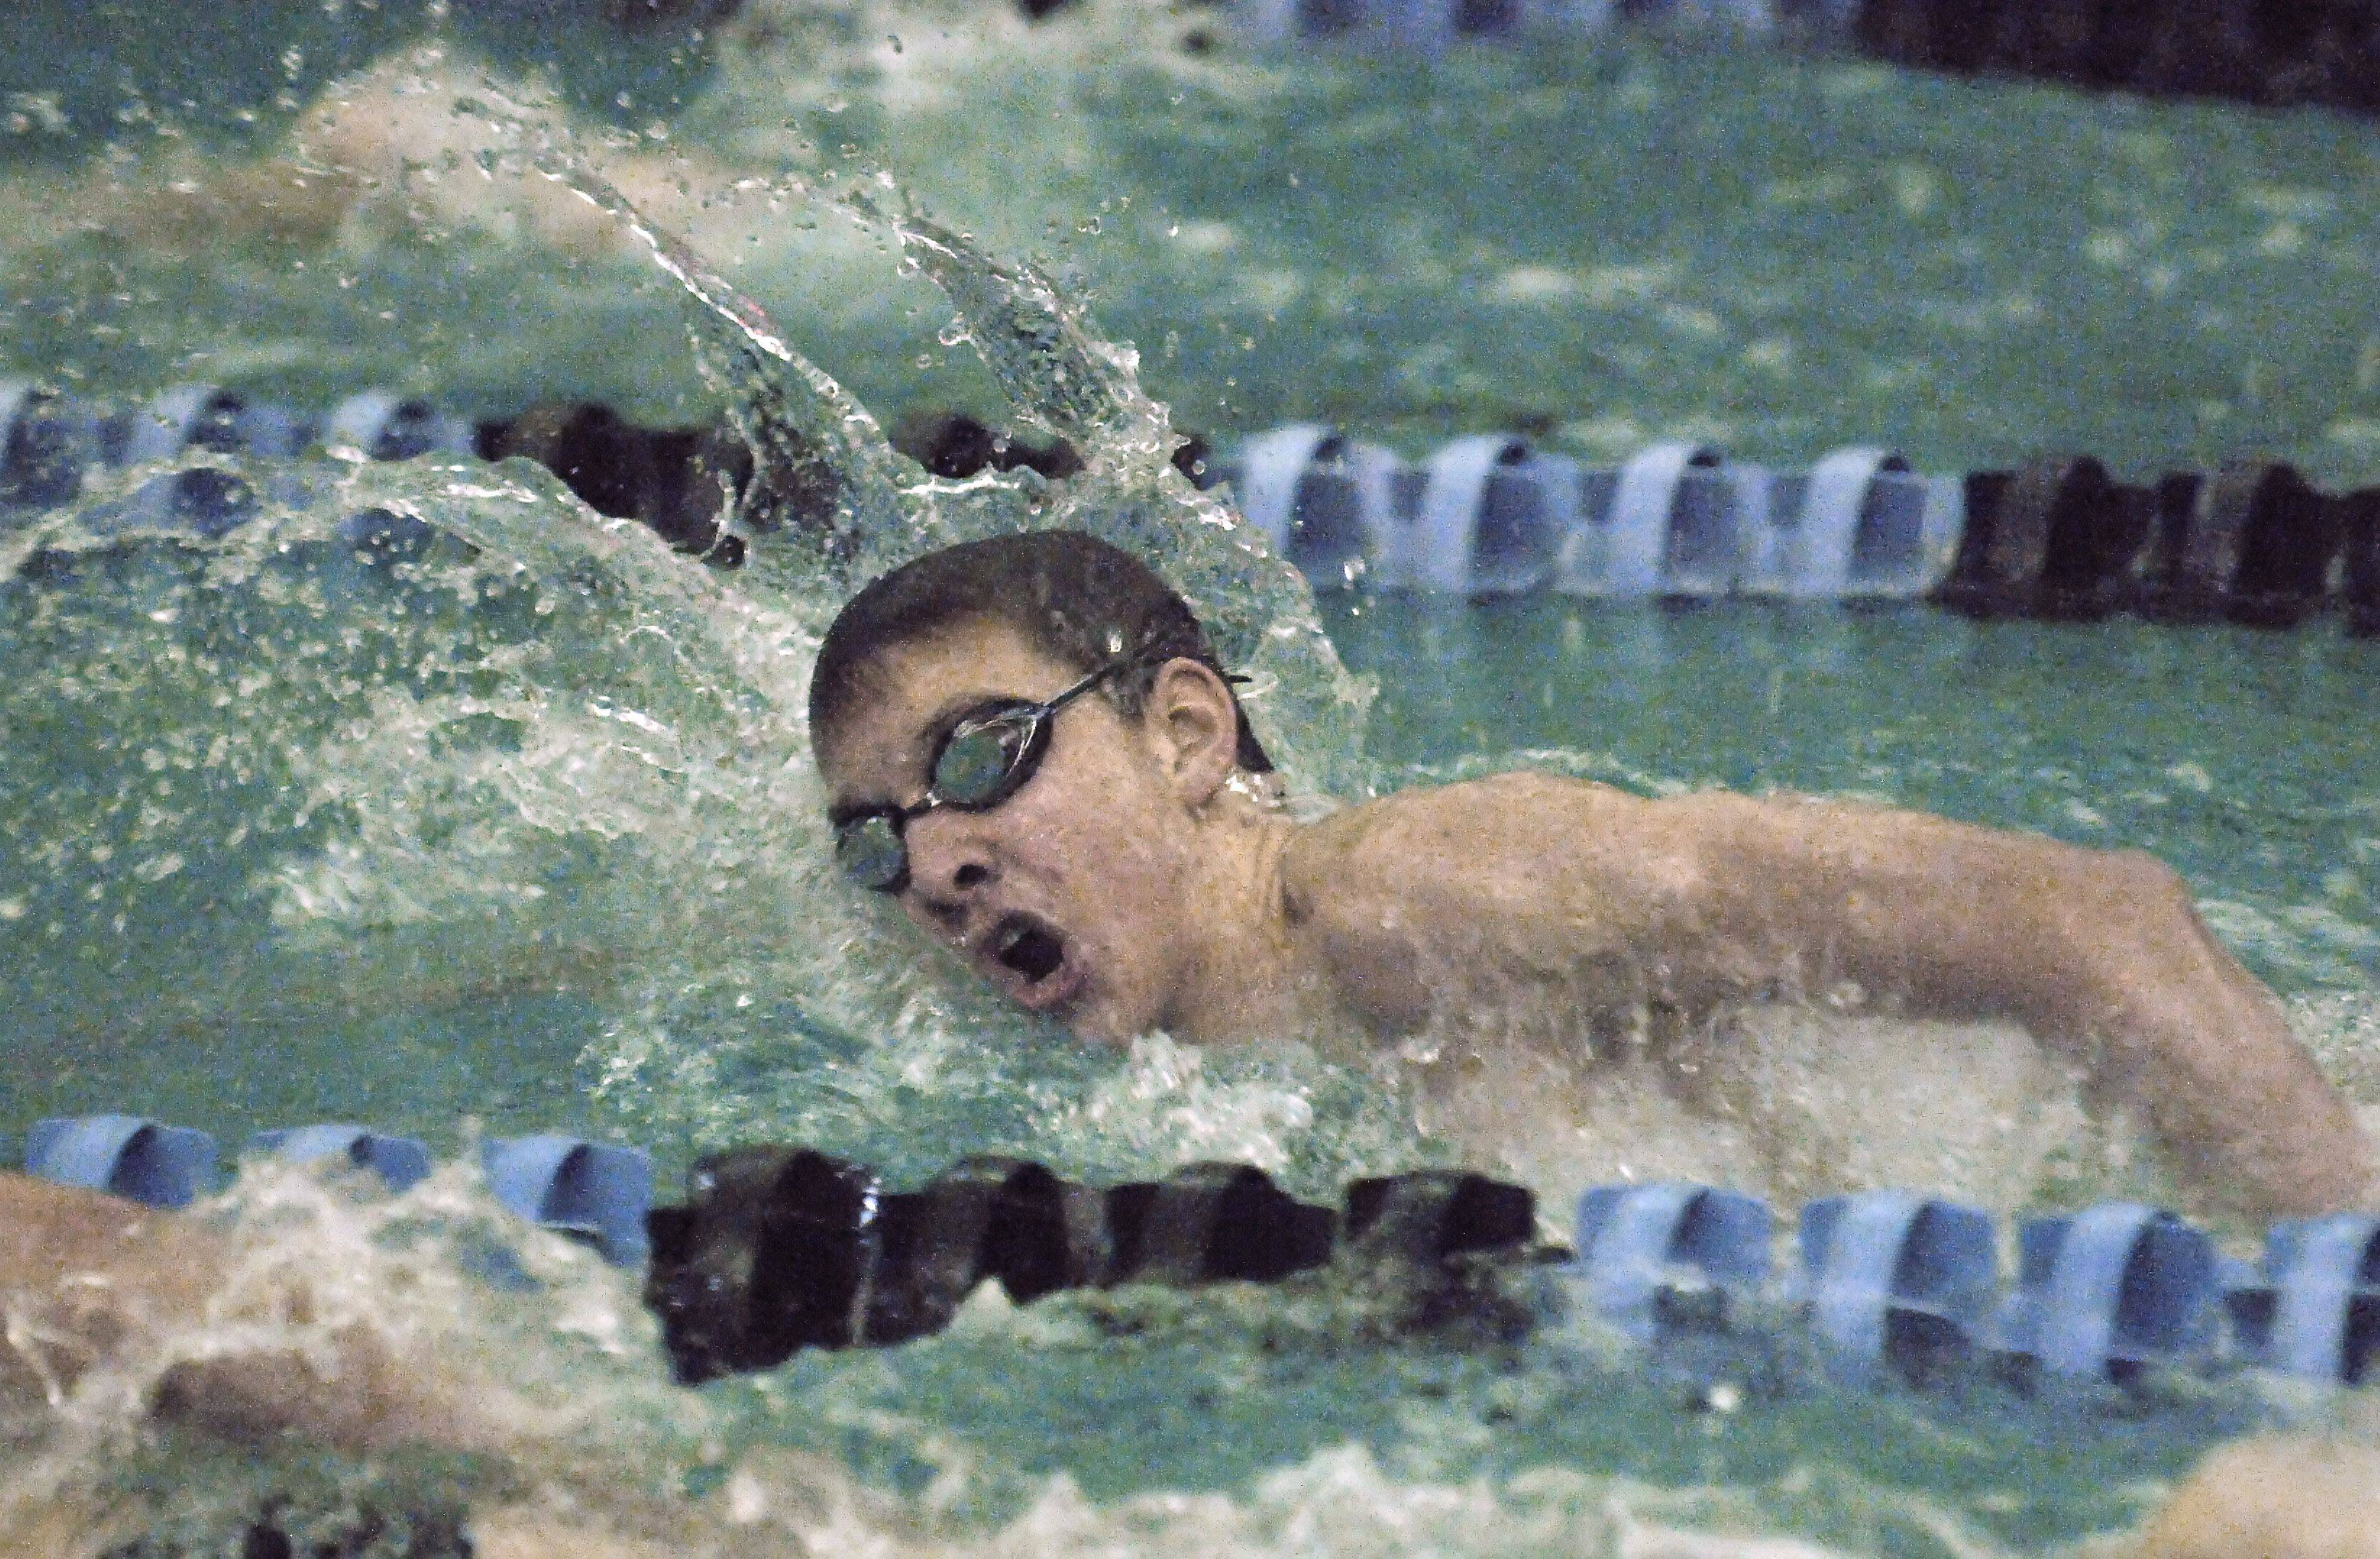 St. Charles North's Kyle Gannon in the 500-yard freestyle Tuesday.